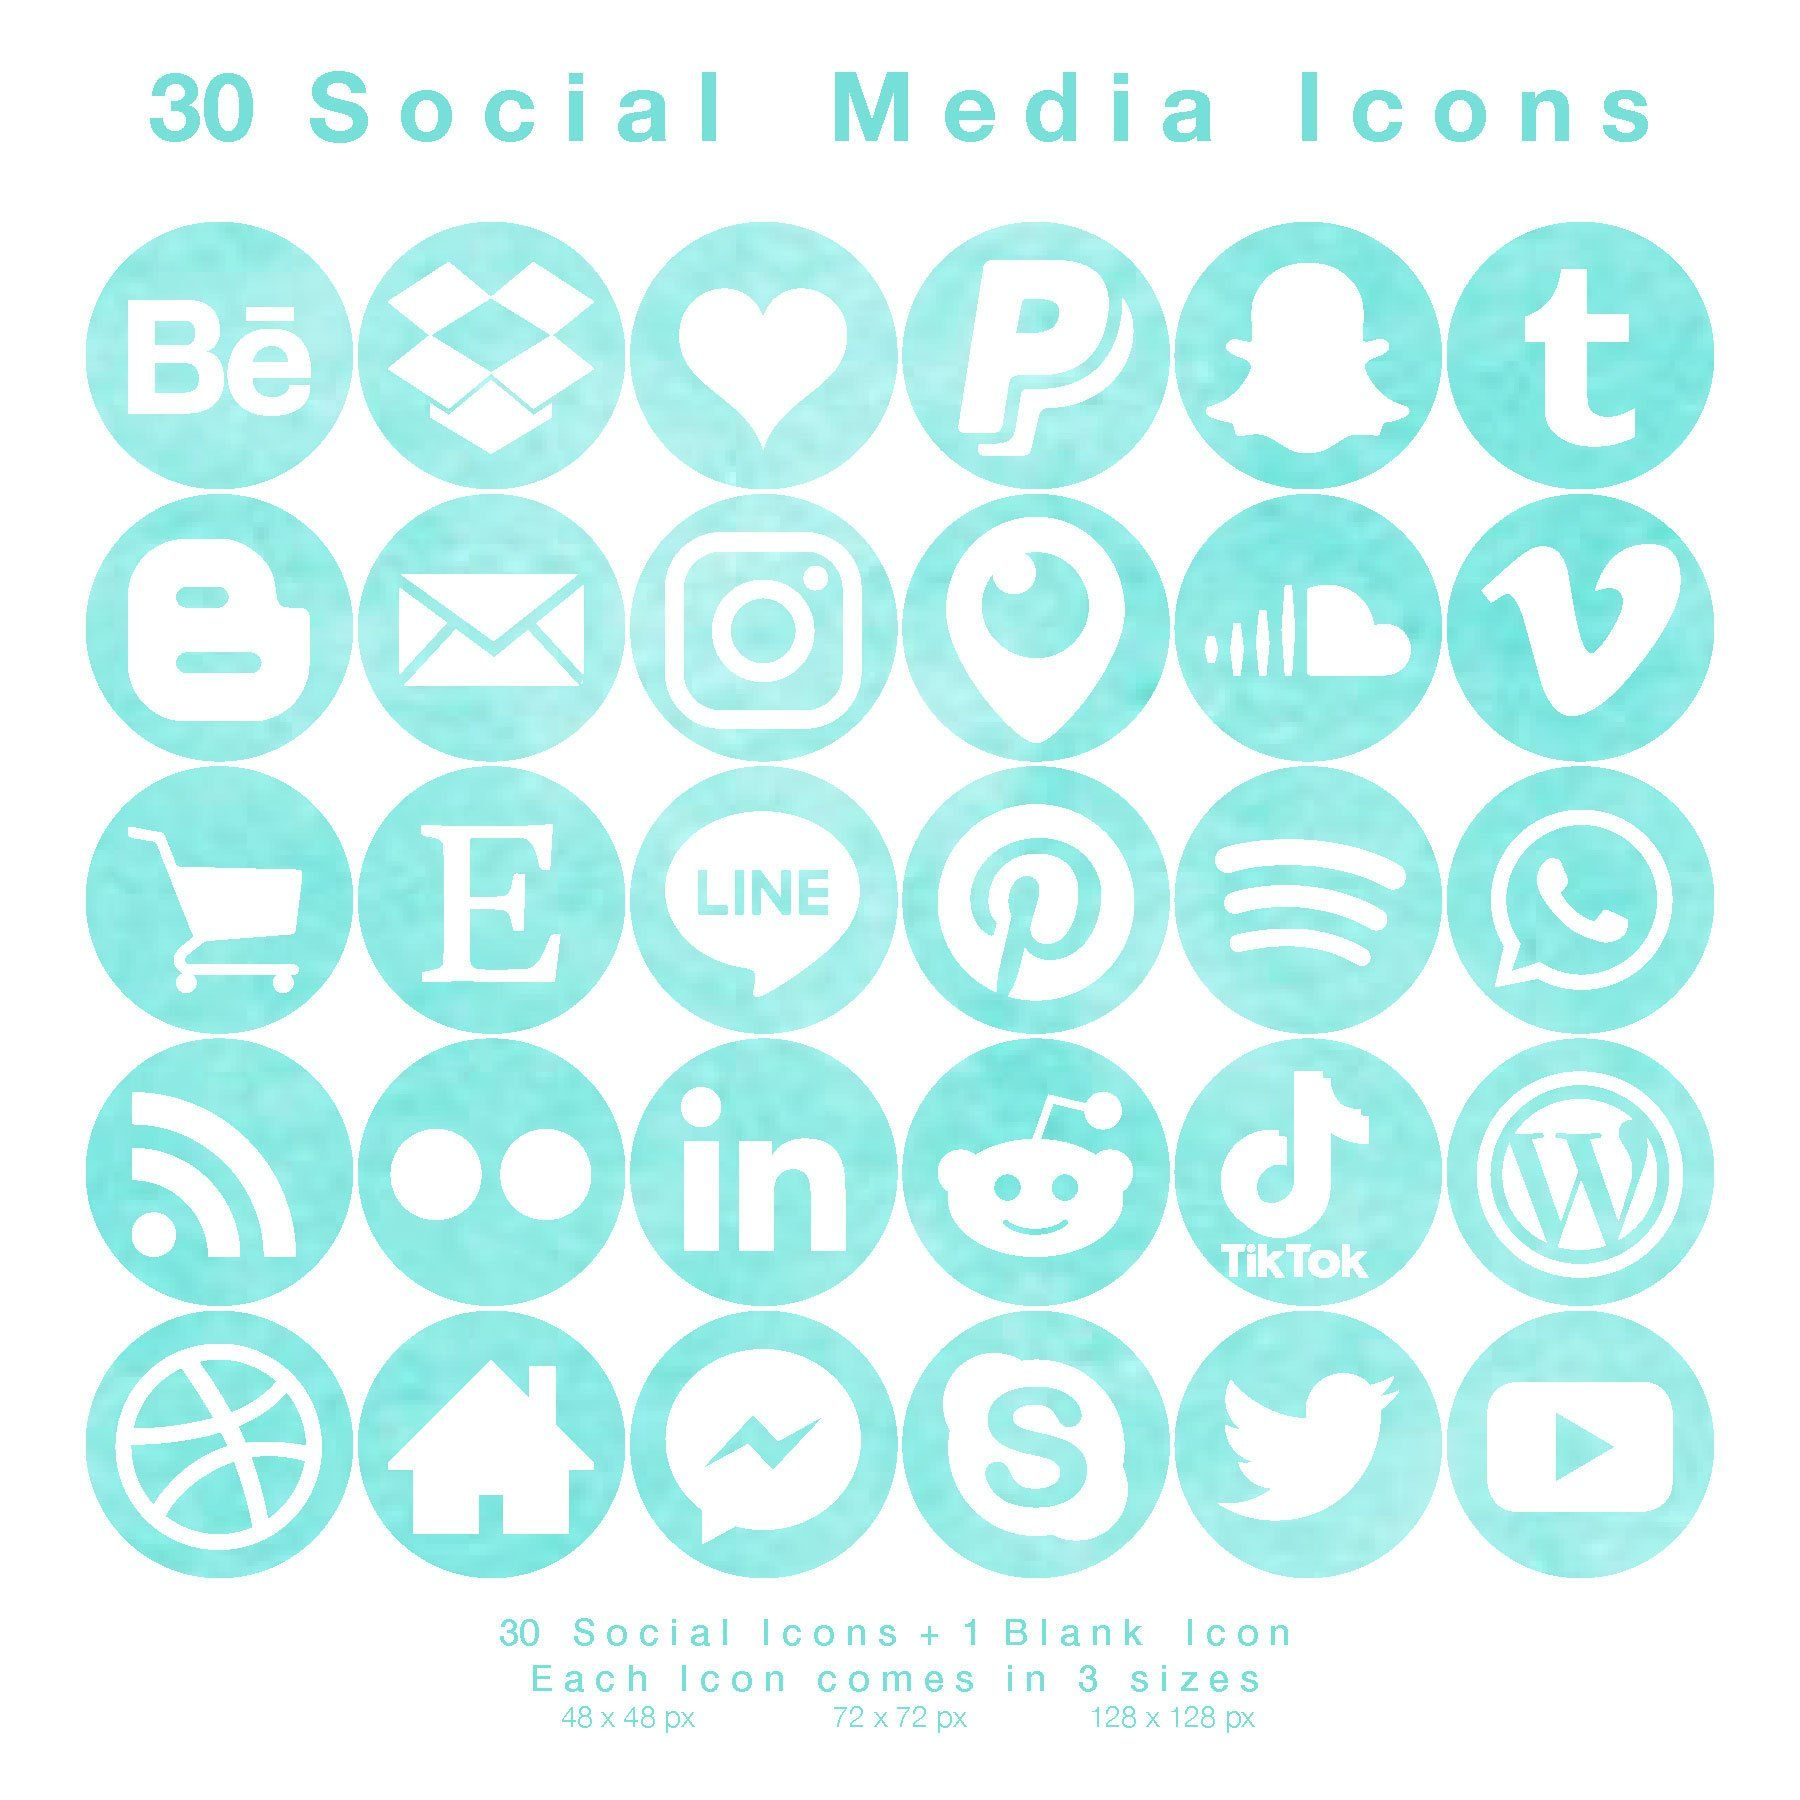 30 Social Media Icons White on Turquoise Watercolour